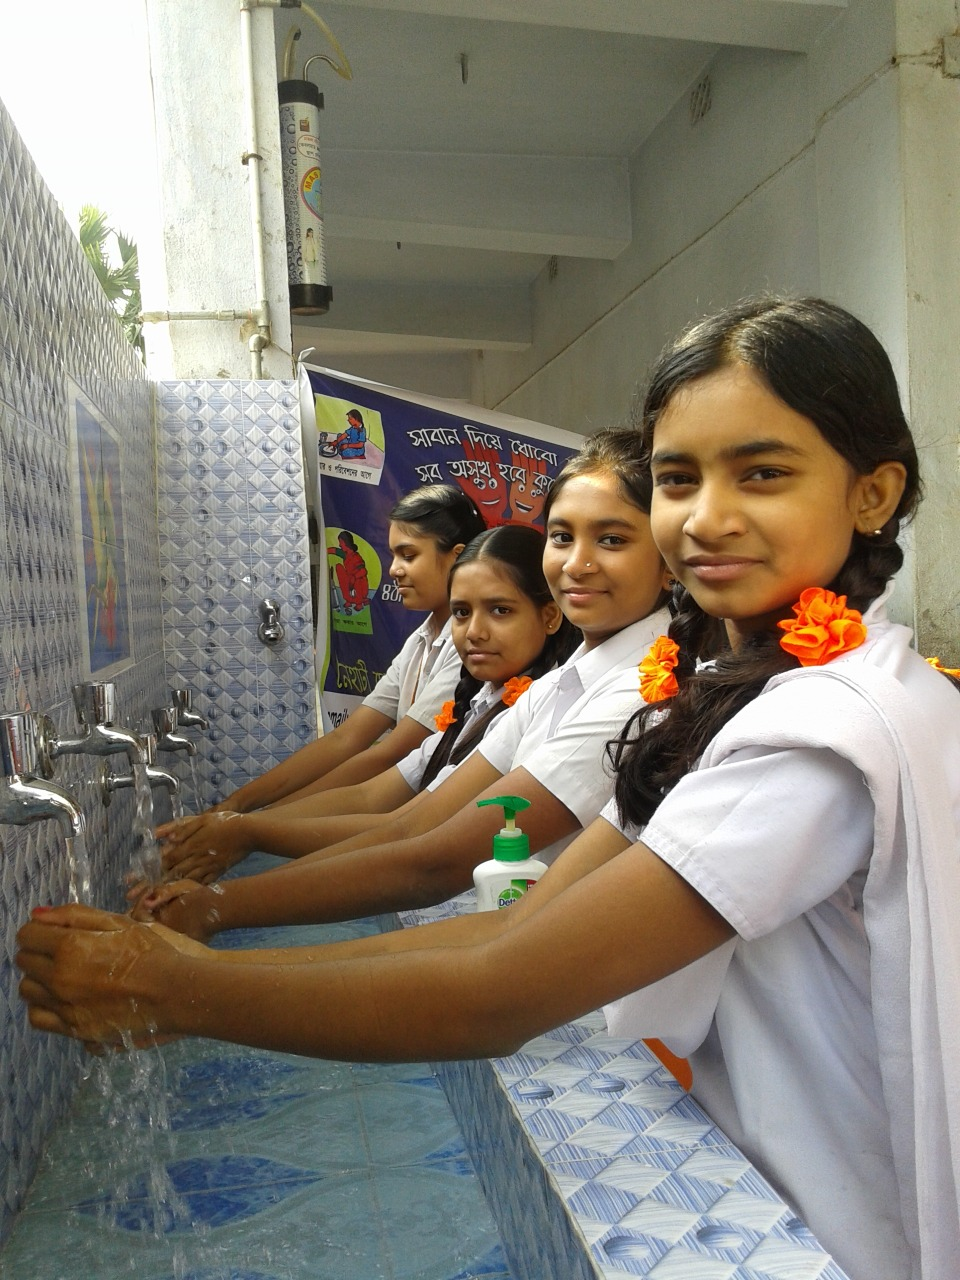 UW India uses clean sanitation facilities to keep girls in school, creating healthier communities.